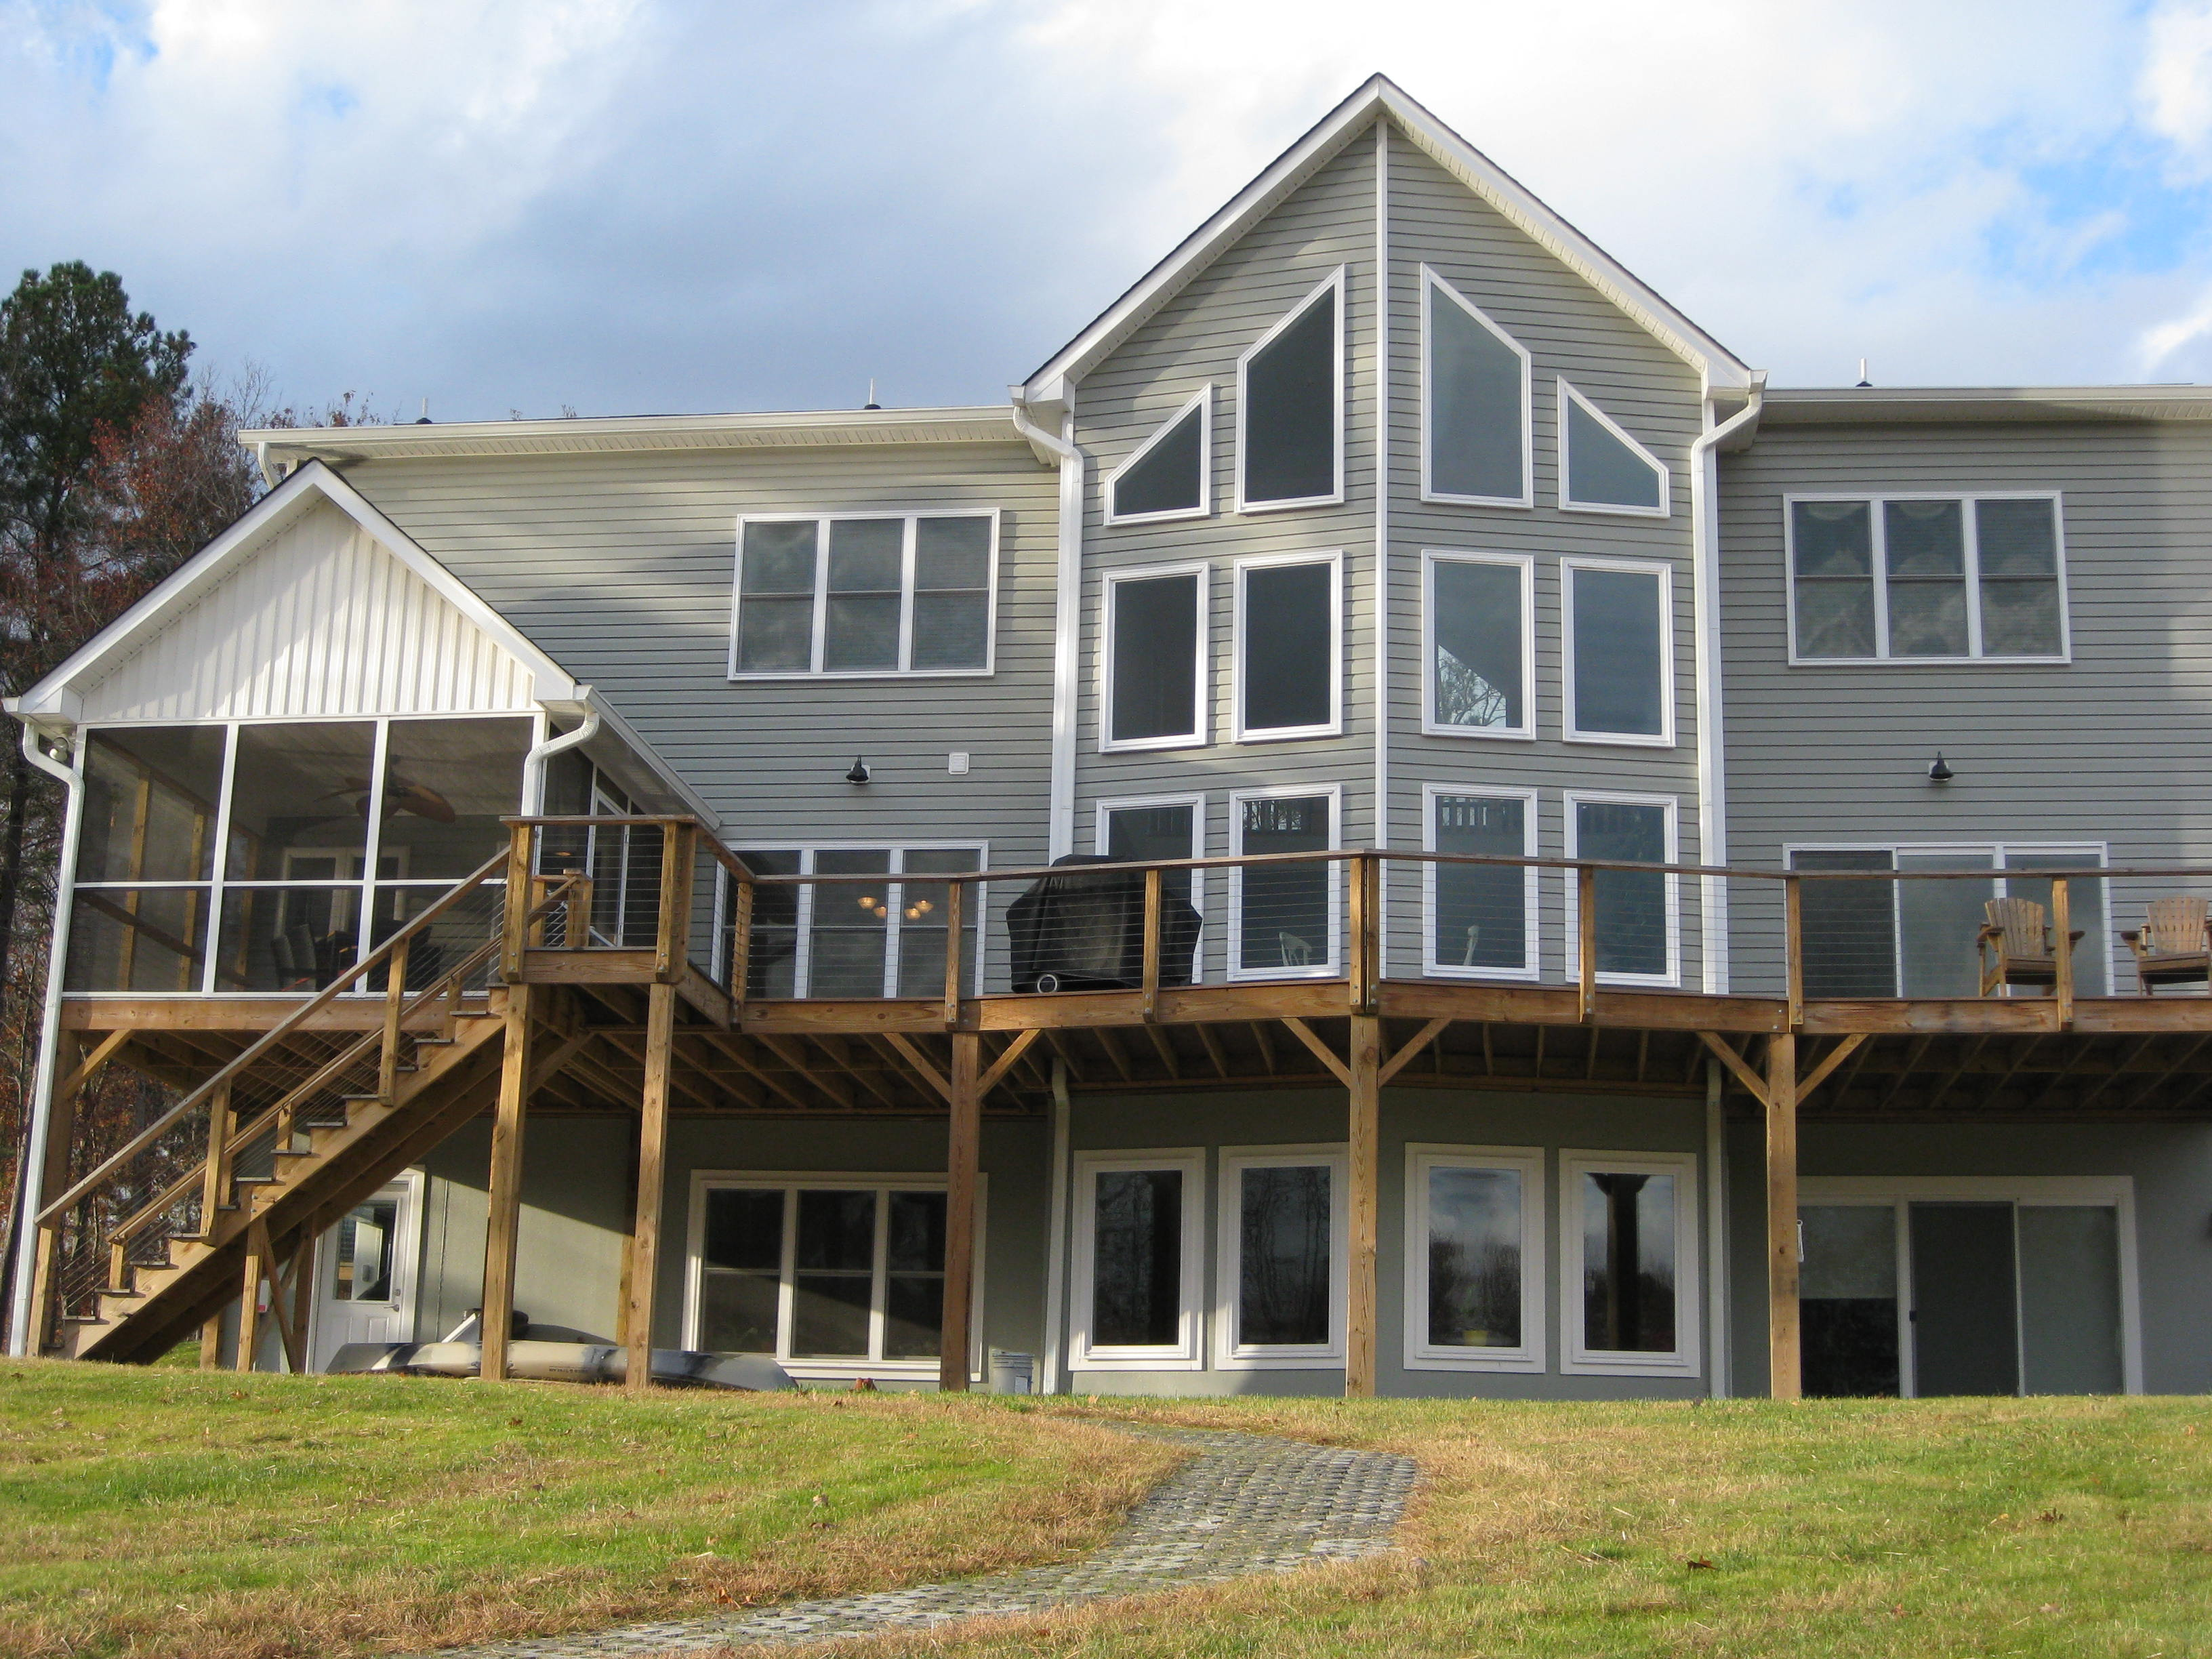 Rent an Accessible Beach House in Virginia by D.C.